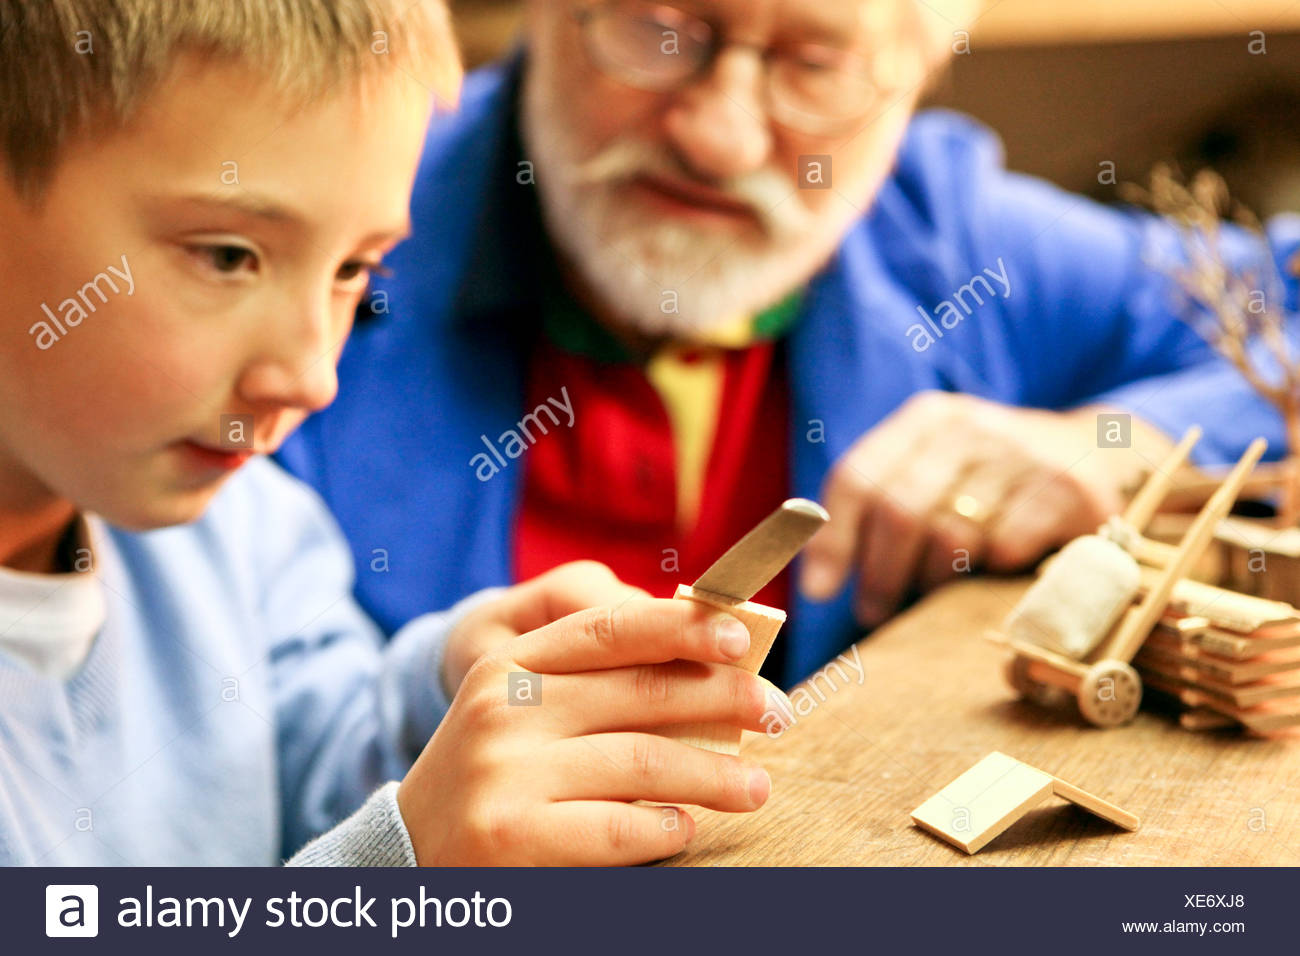 Grandfather and grandson making wooden craft together - Stock Image